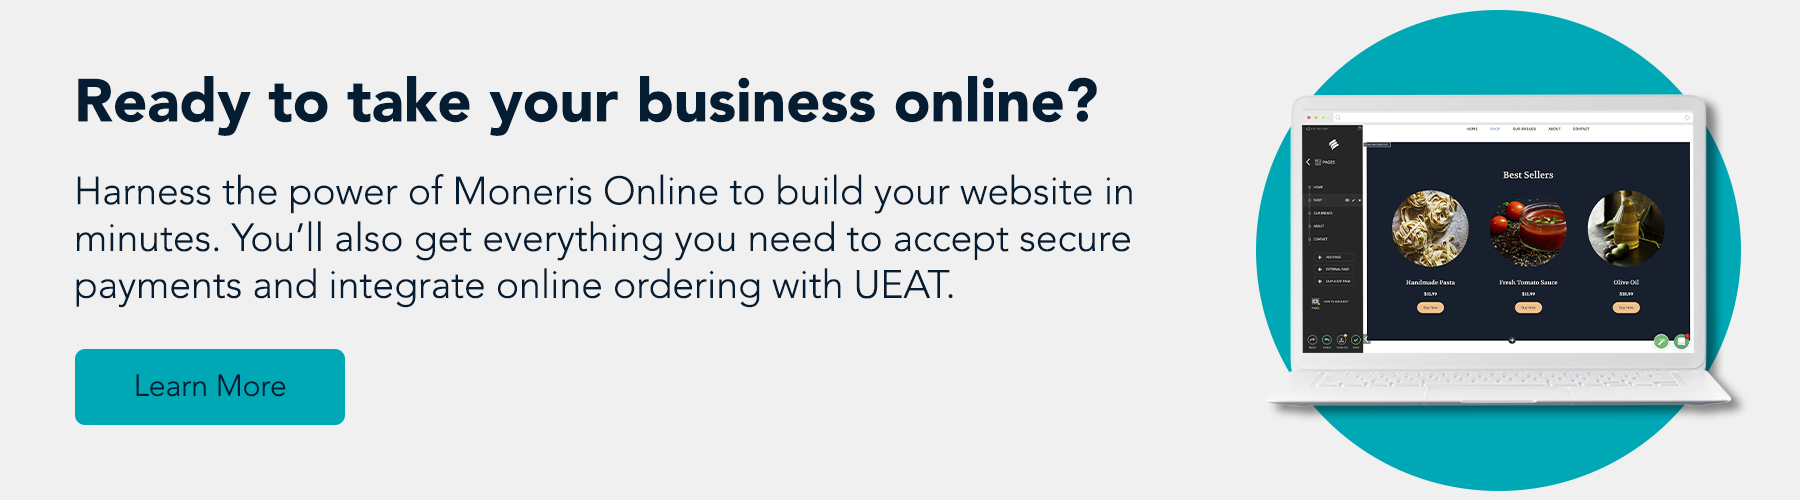 Ready to take your business online? Harness the power of Moneris Online to build your website in minutes. You'll also get everything you need to accept secure payments and integrate online ordering with UEAT. Learn more.